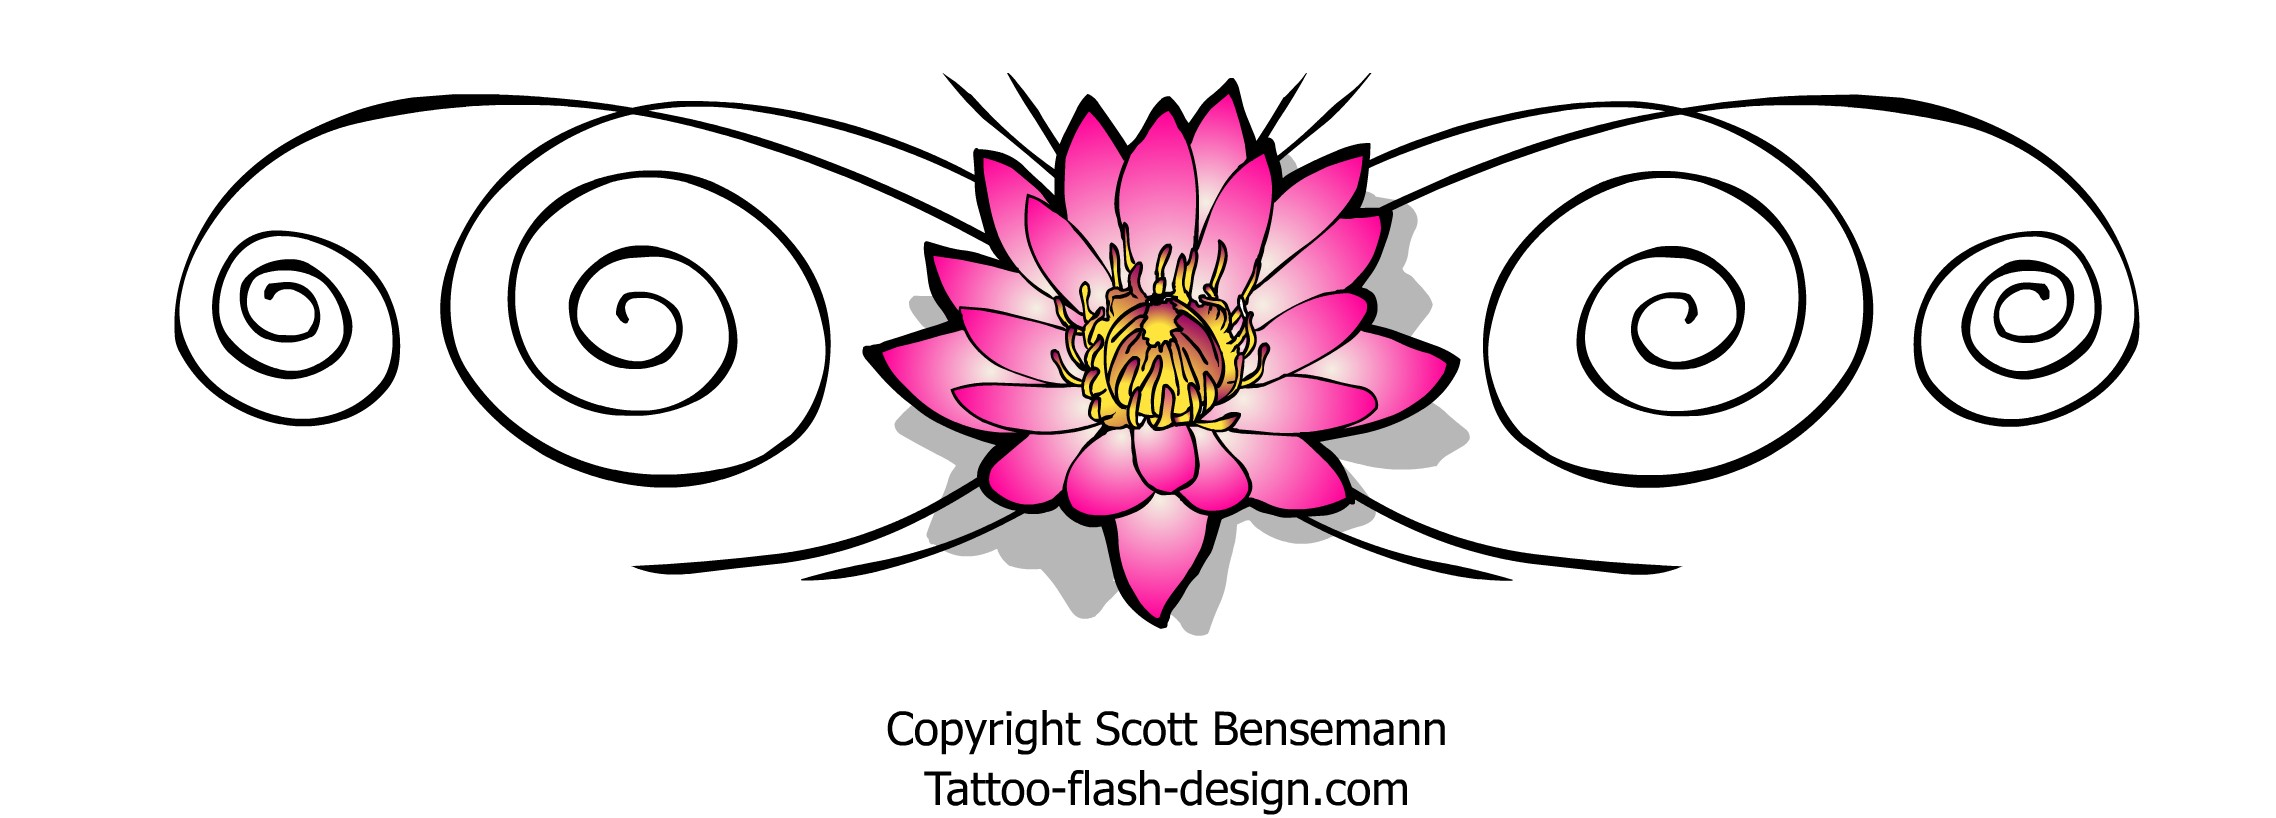 lotus flower tattoo on lower back in 2017 real photo pictures images and sketches tattoo. Black Bedroom Furniture Sets. Home Design Ideas